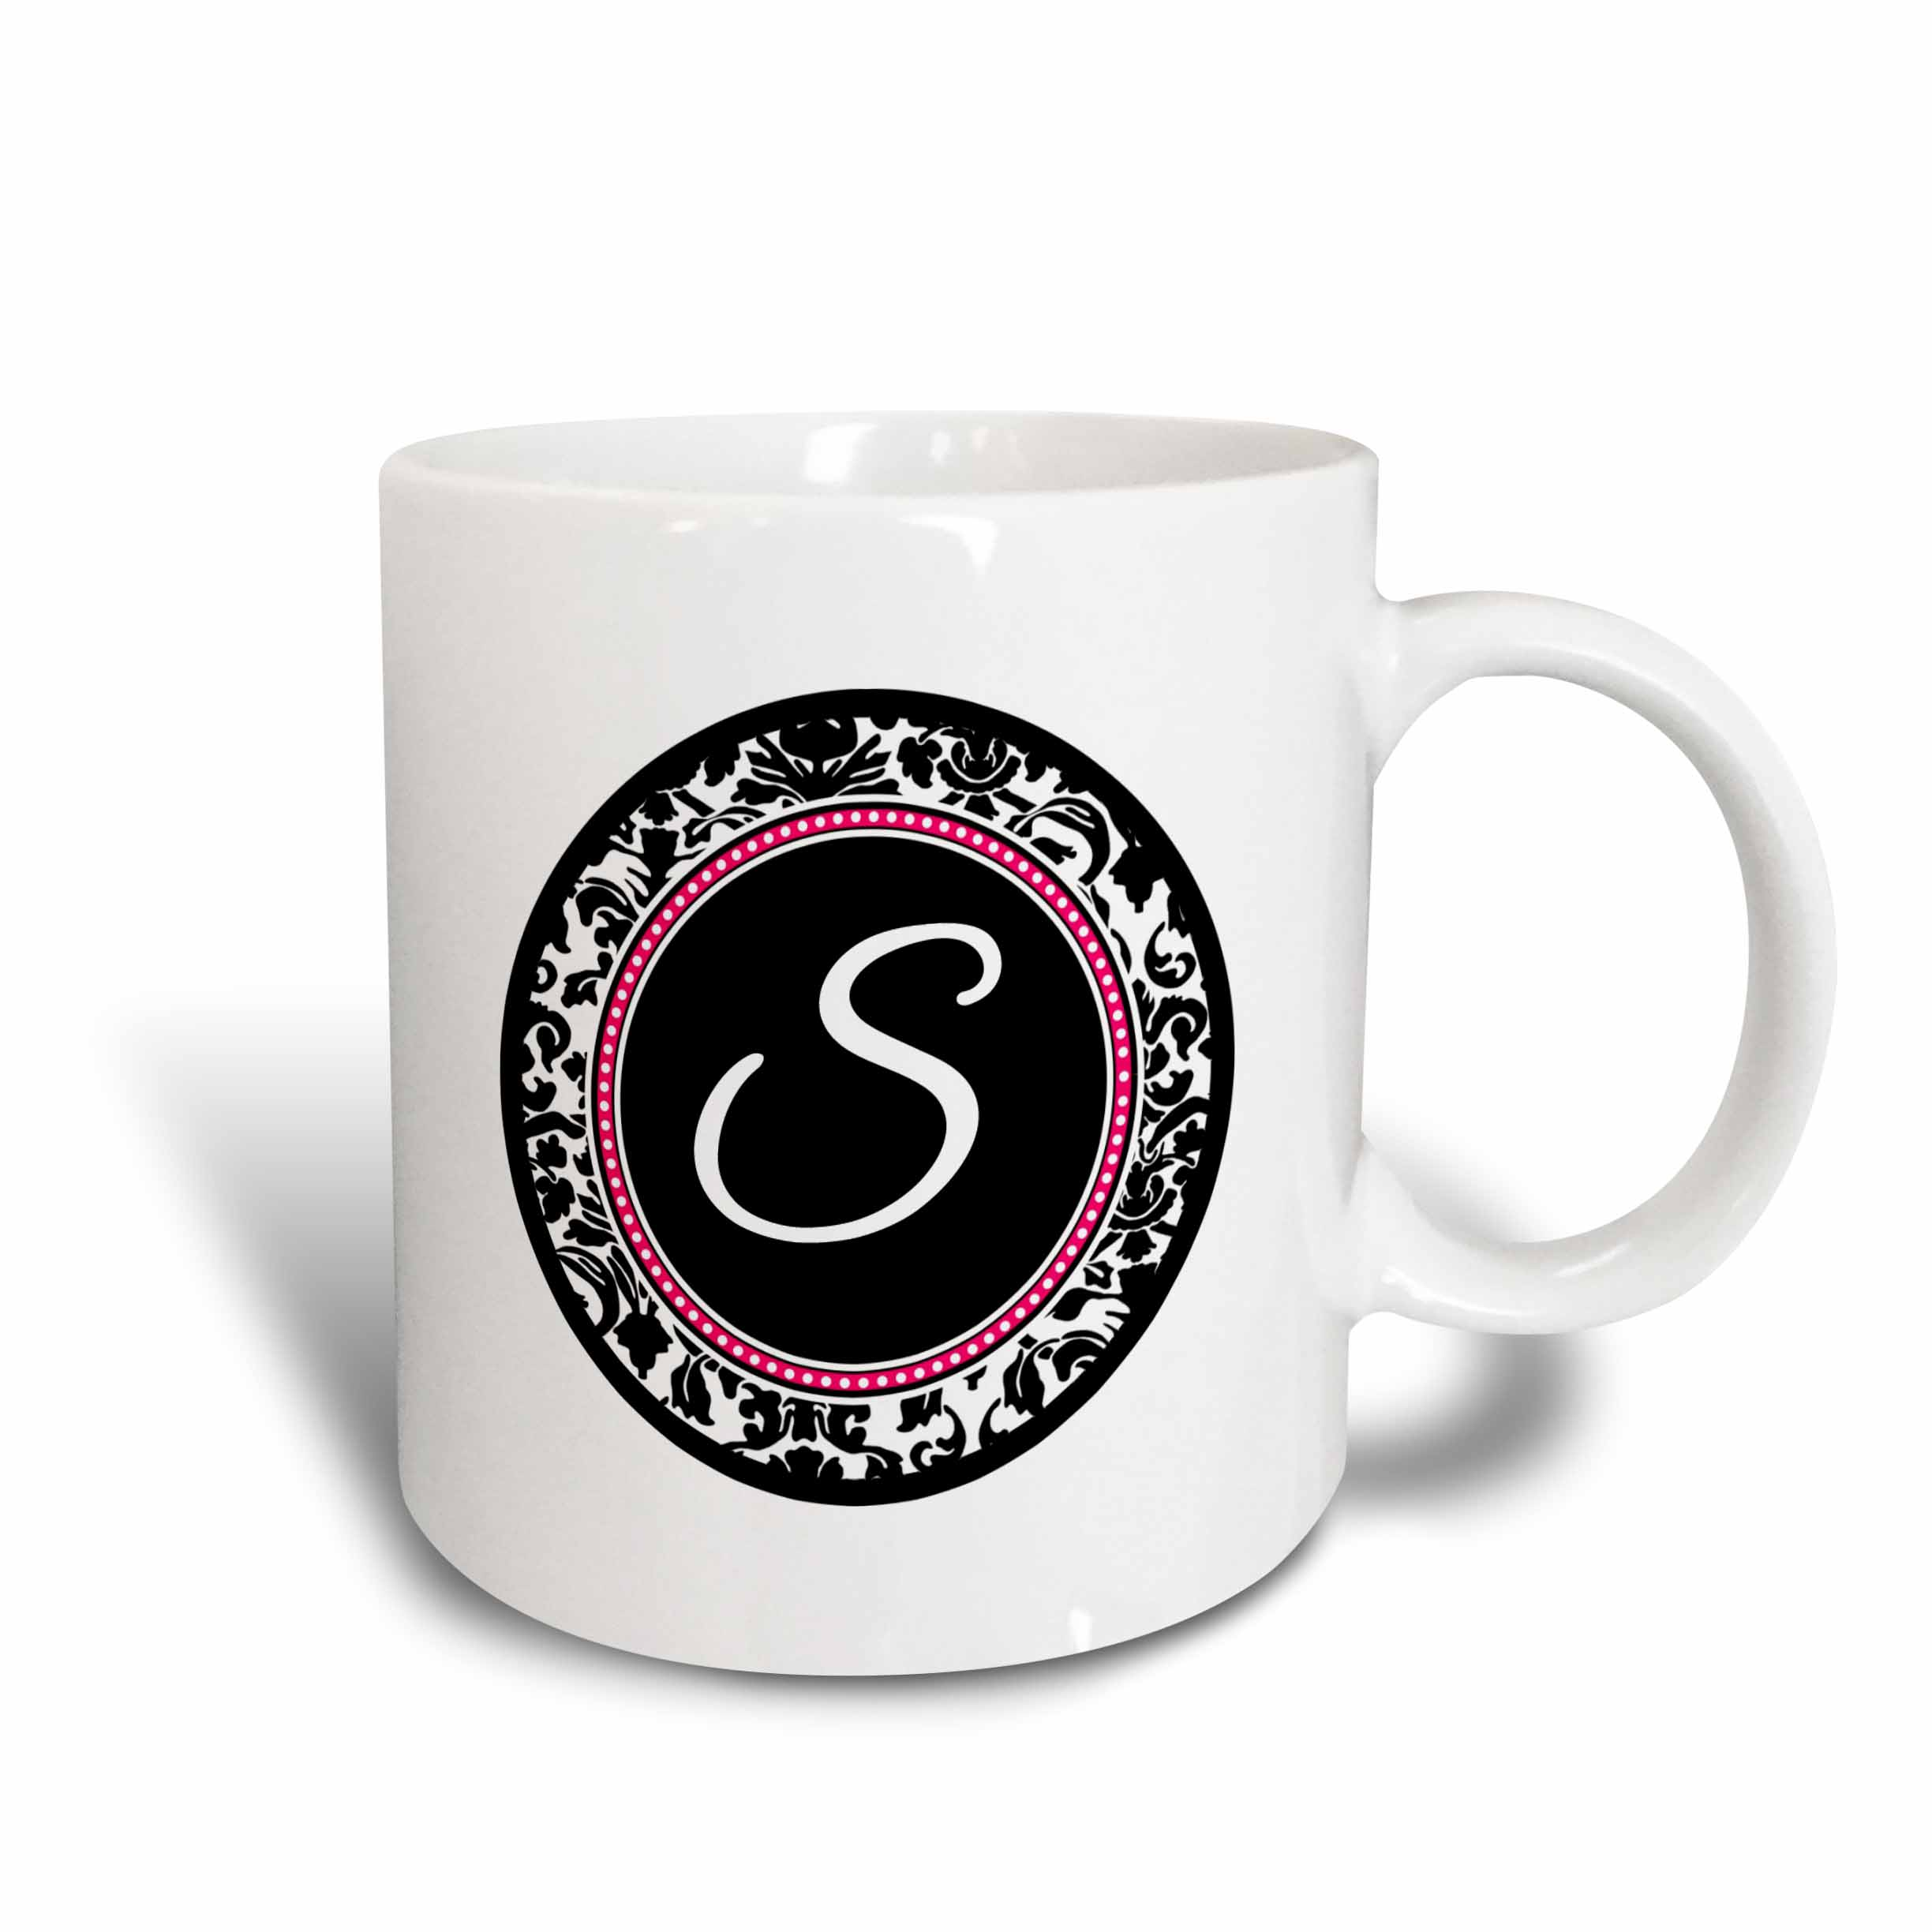 3dRose Letter S stylish monogrammed circle - girly personal initial personalized black damask with hot pink, Ceramic Mug, 11-ounce